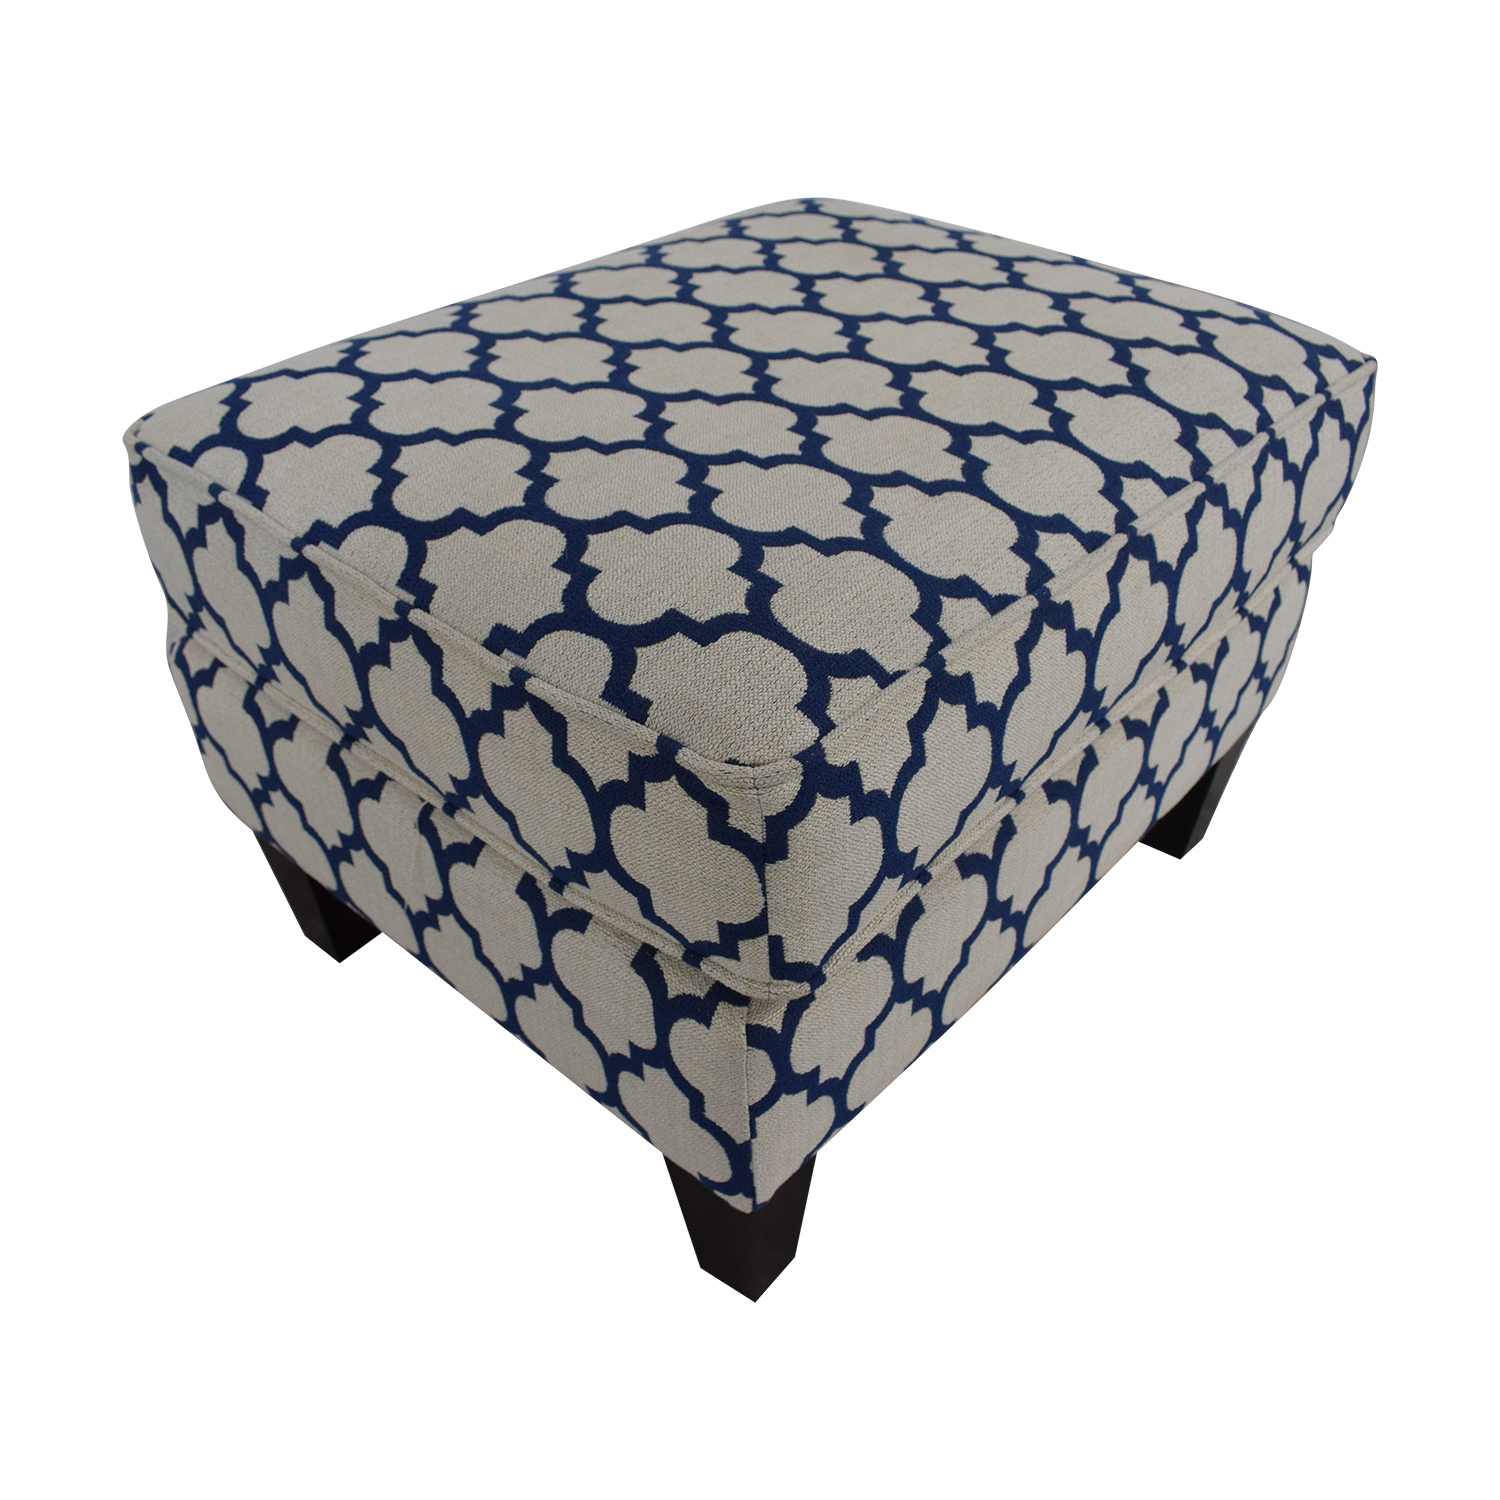 Braxton Culler Braxton Culler White & Blue Ottoman for sale